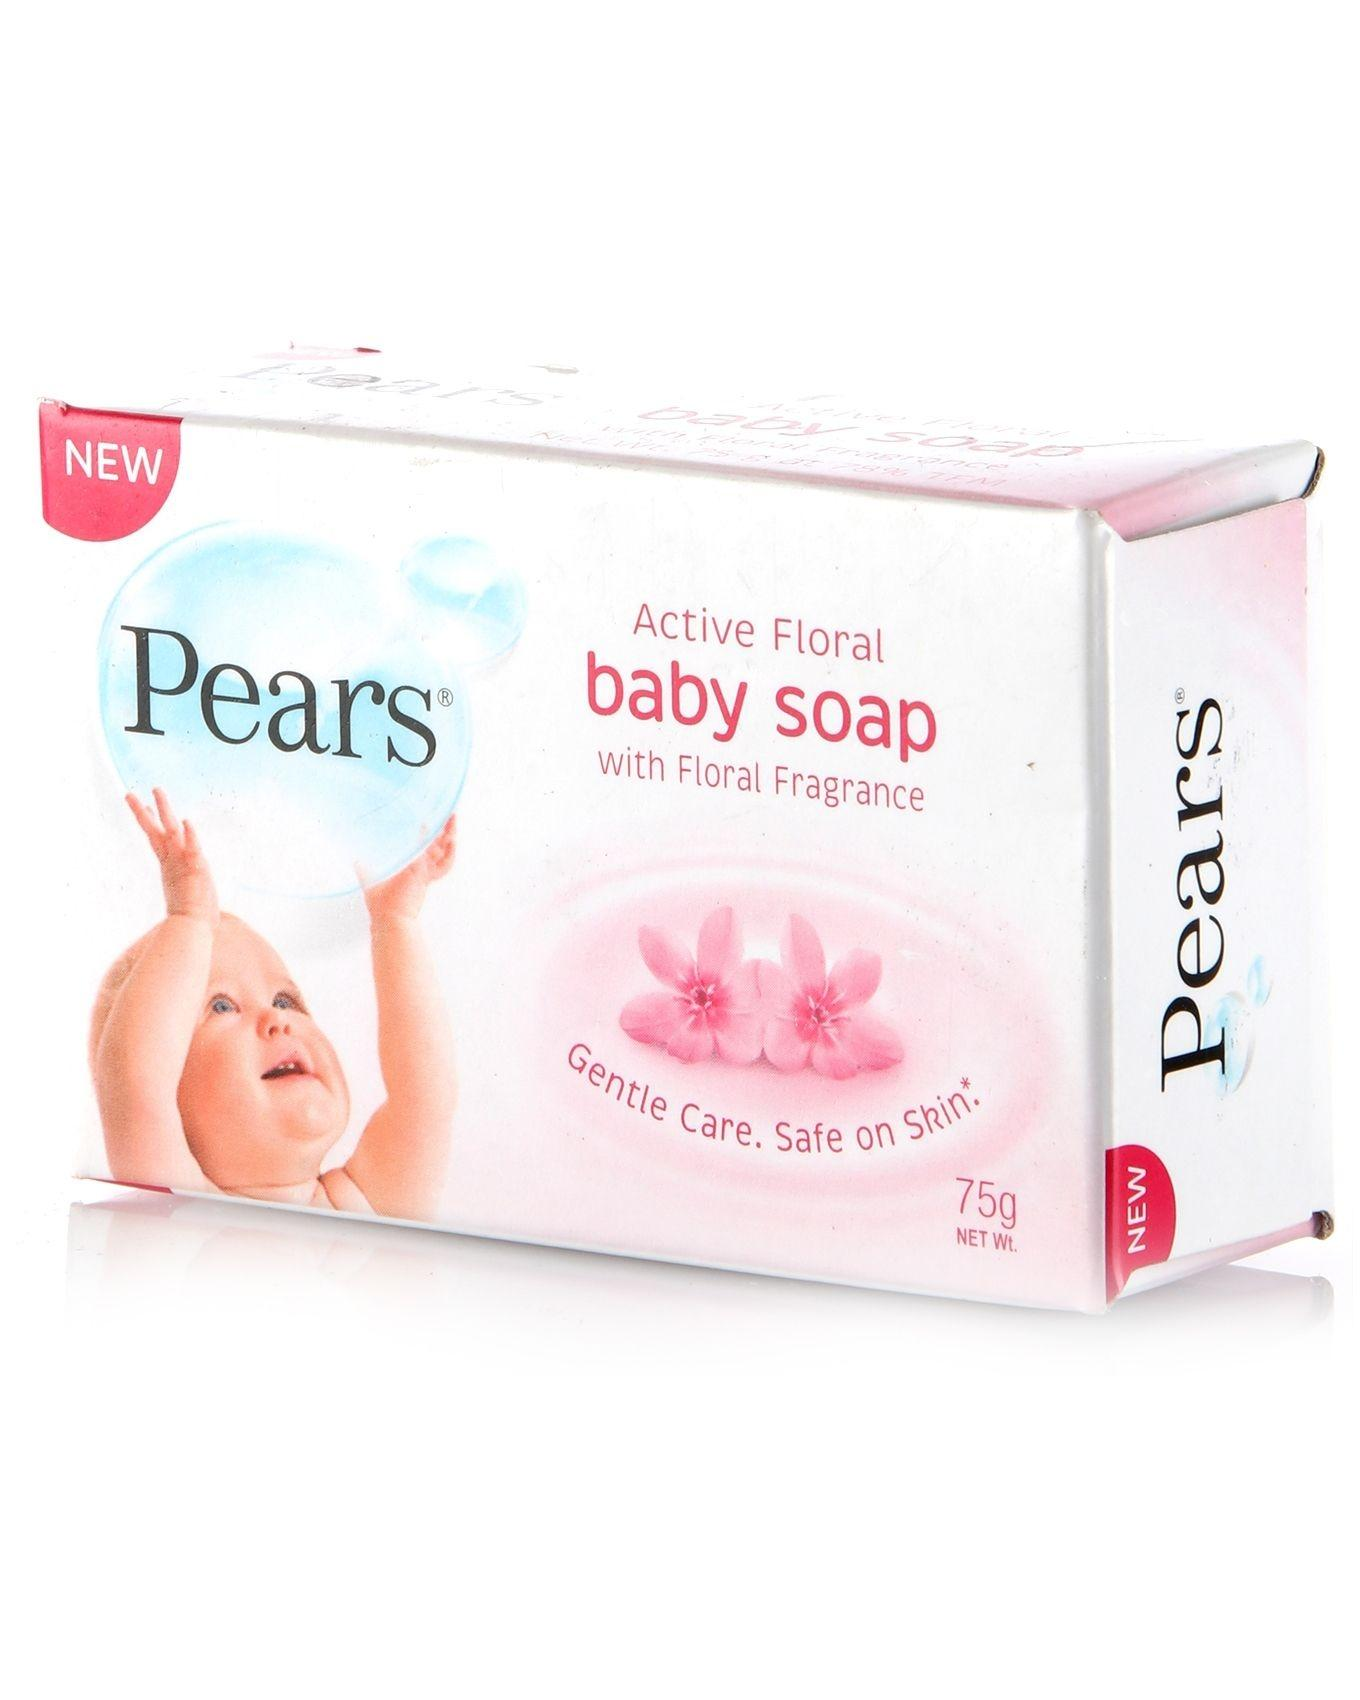 Active Floral Baby Soap With Floral Fragrance 100g